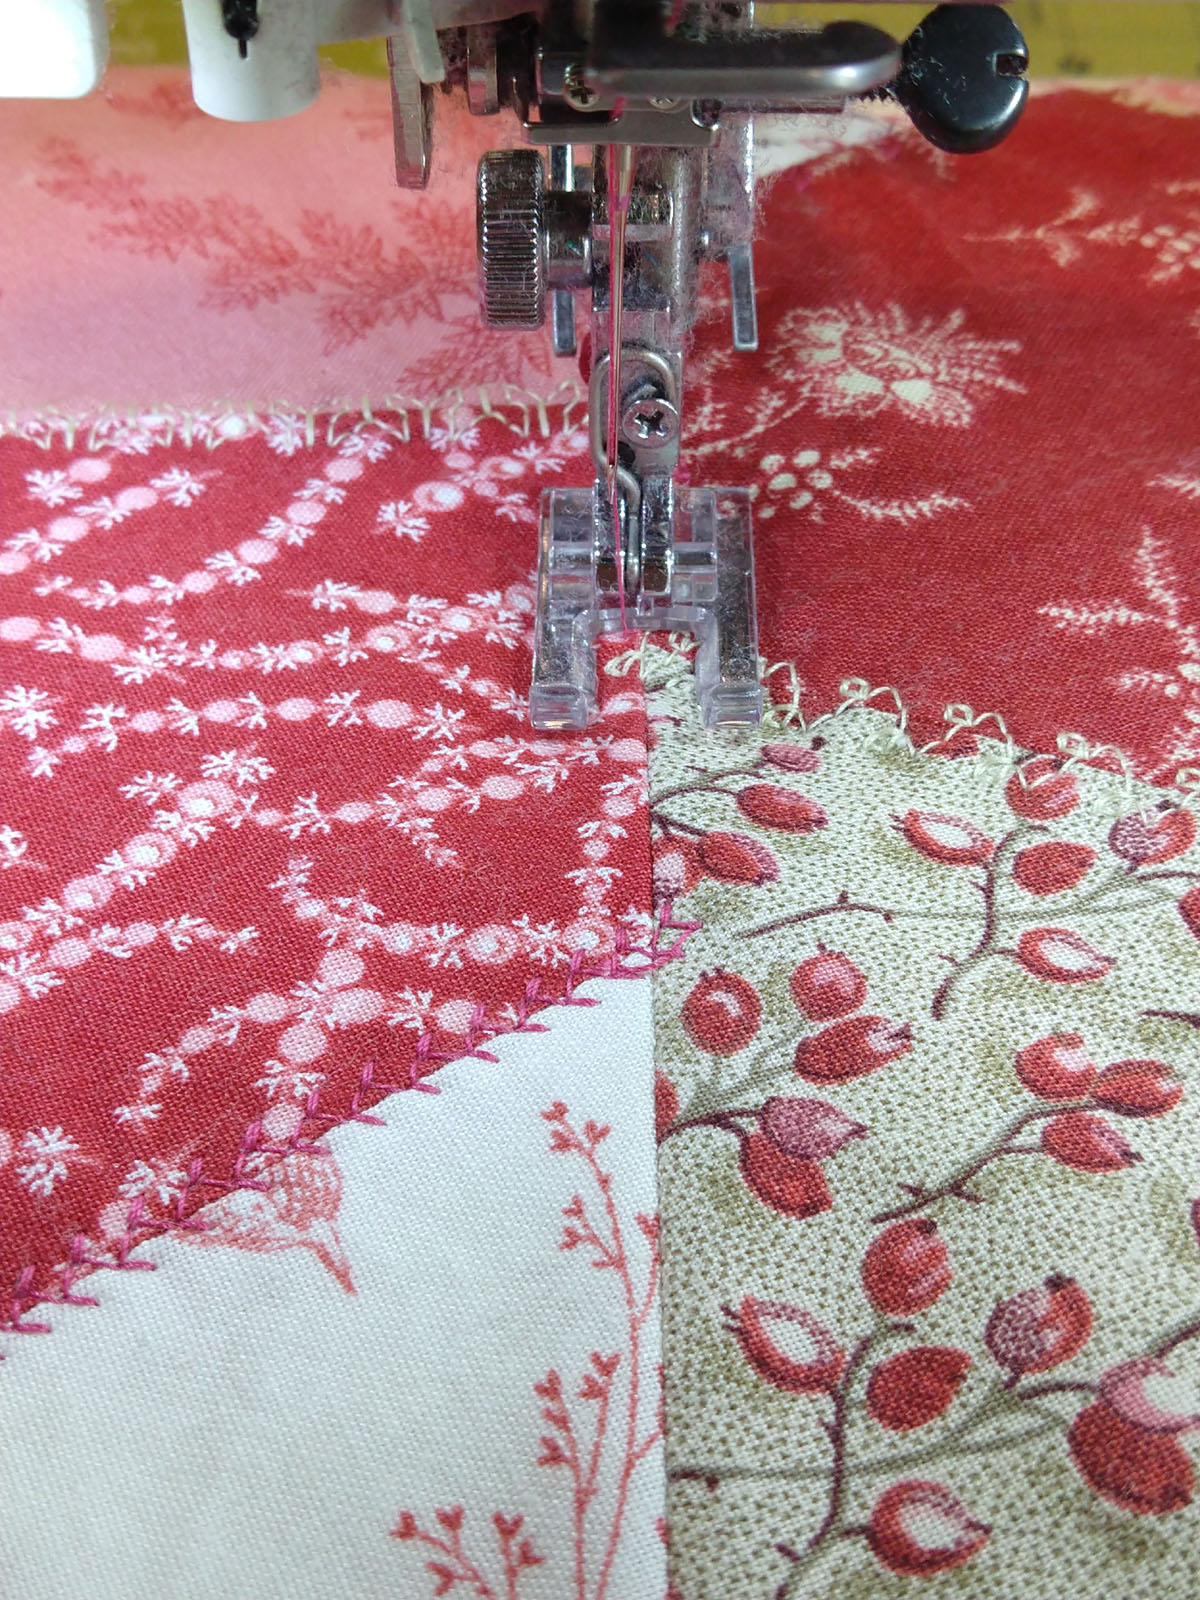 open to sewing machine foot stitching quilt pieces